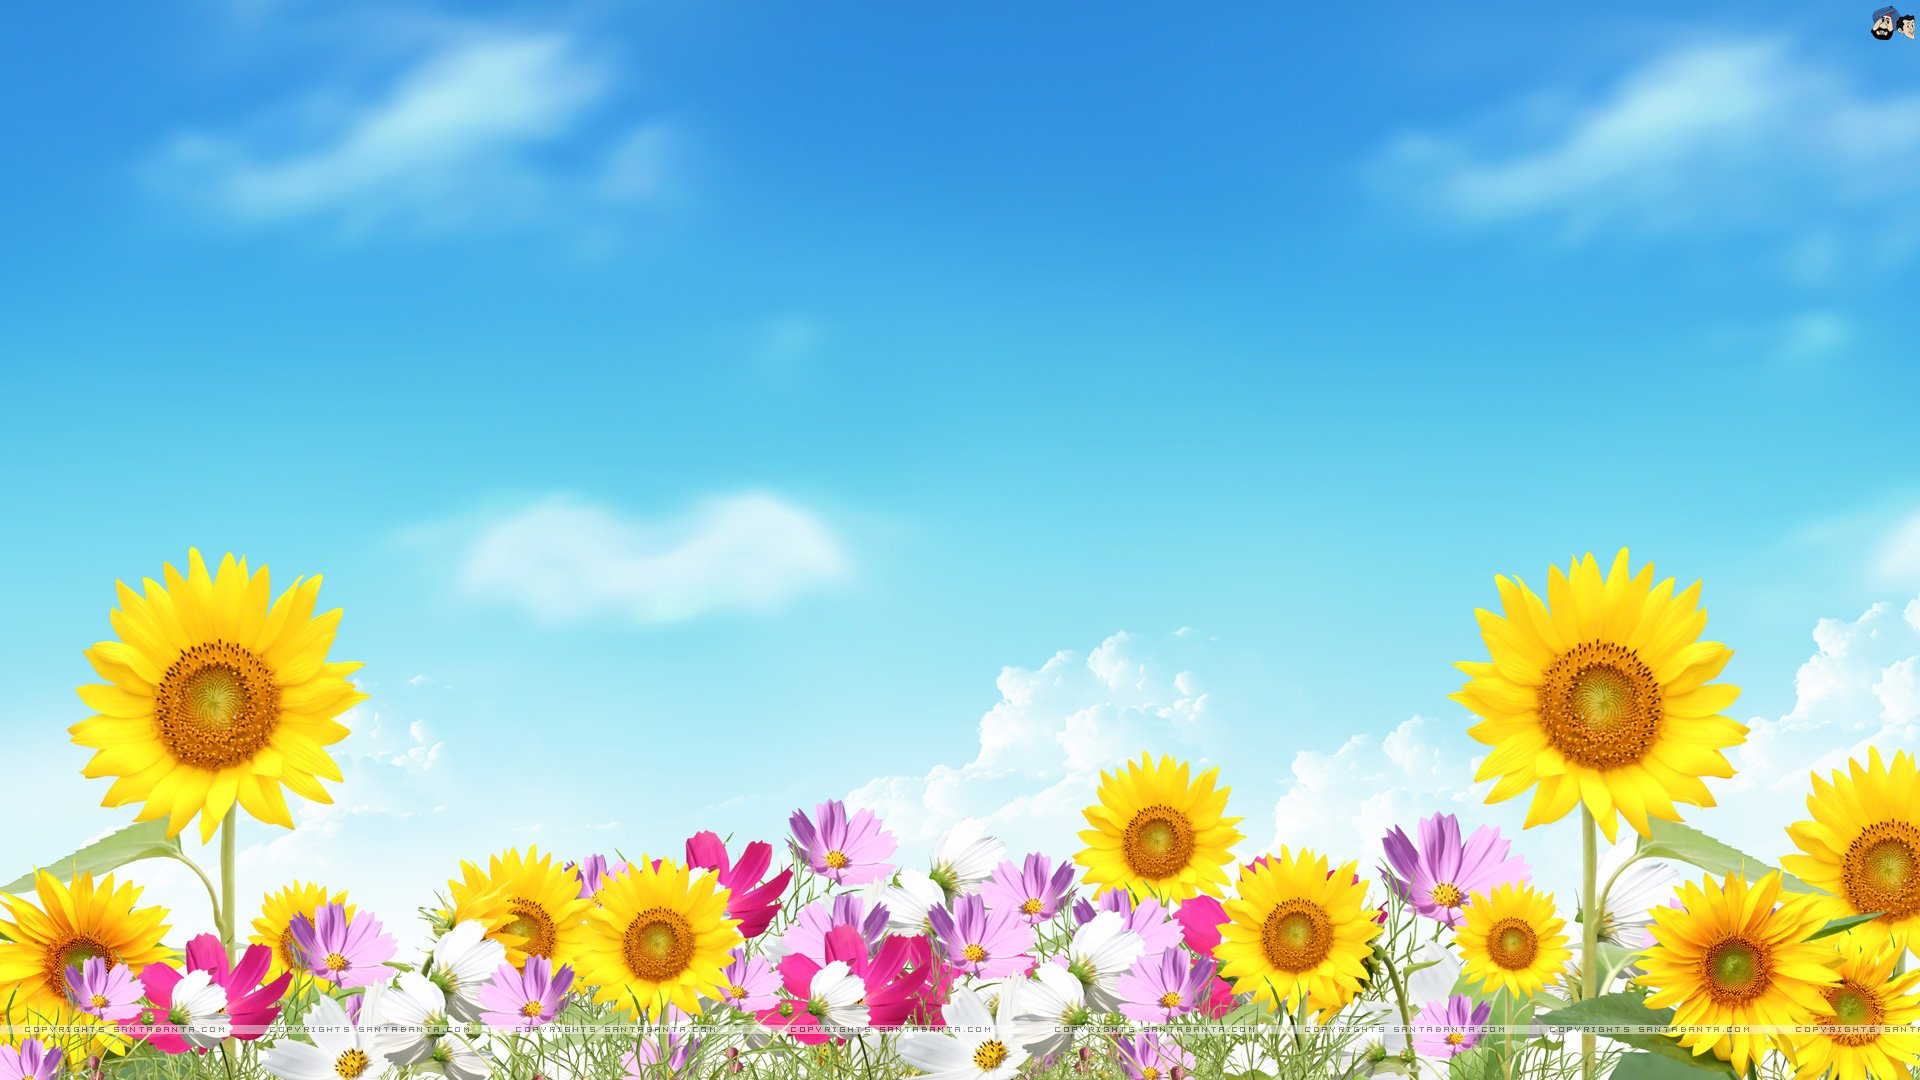 Summer Backgrounds on